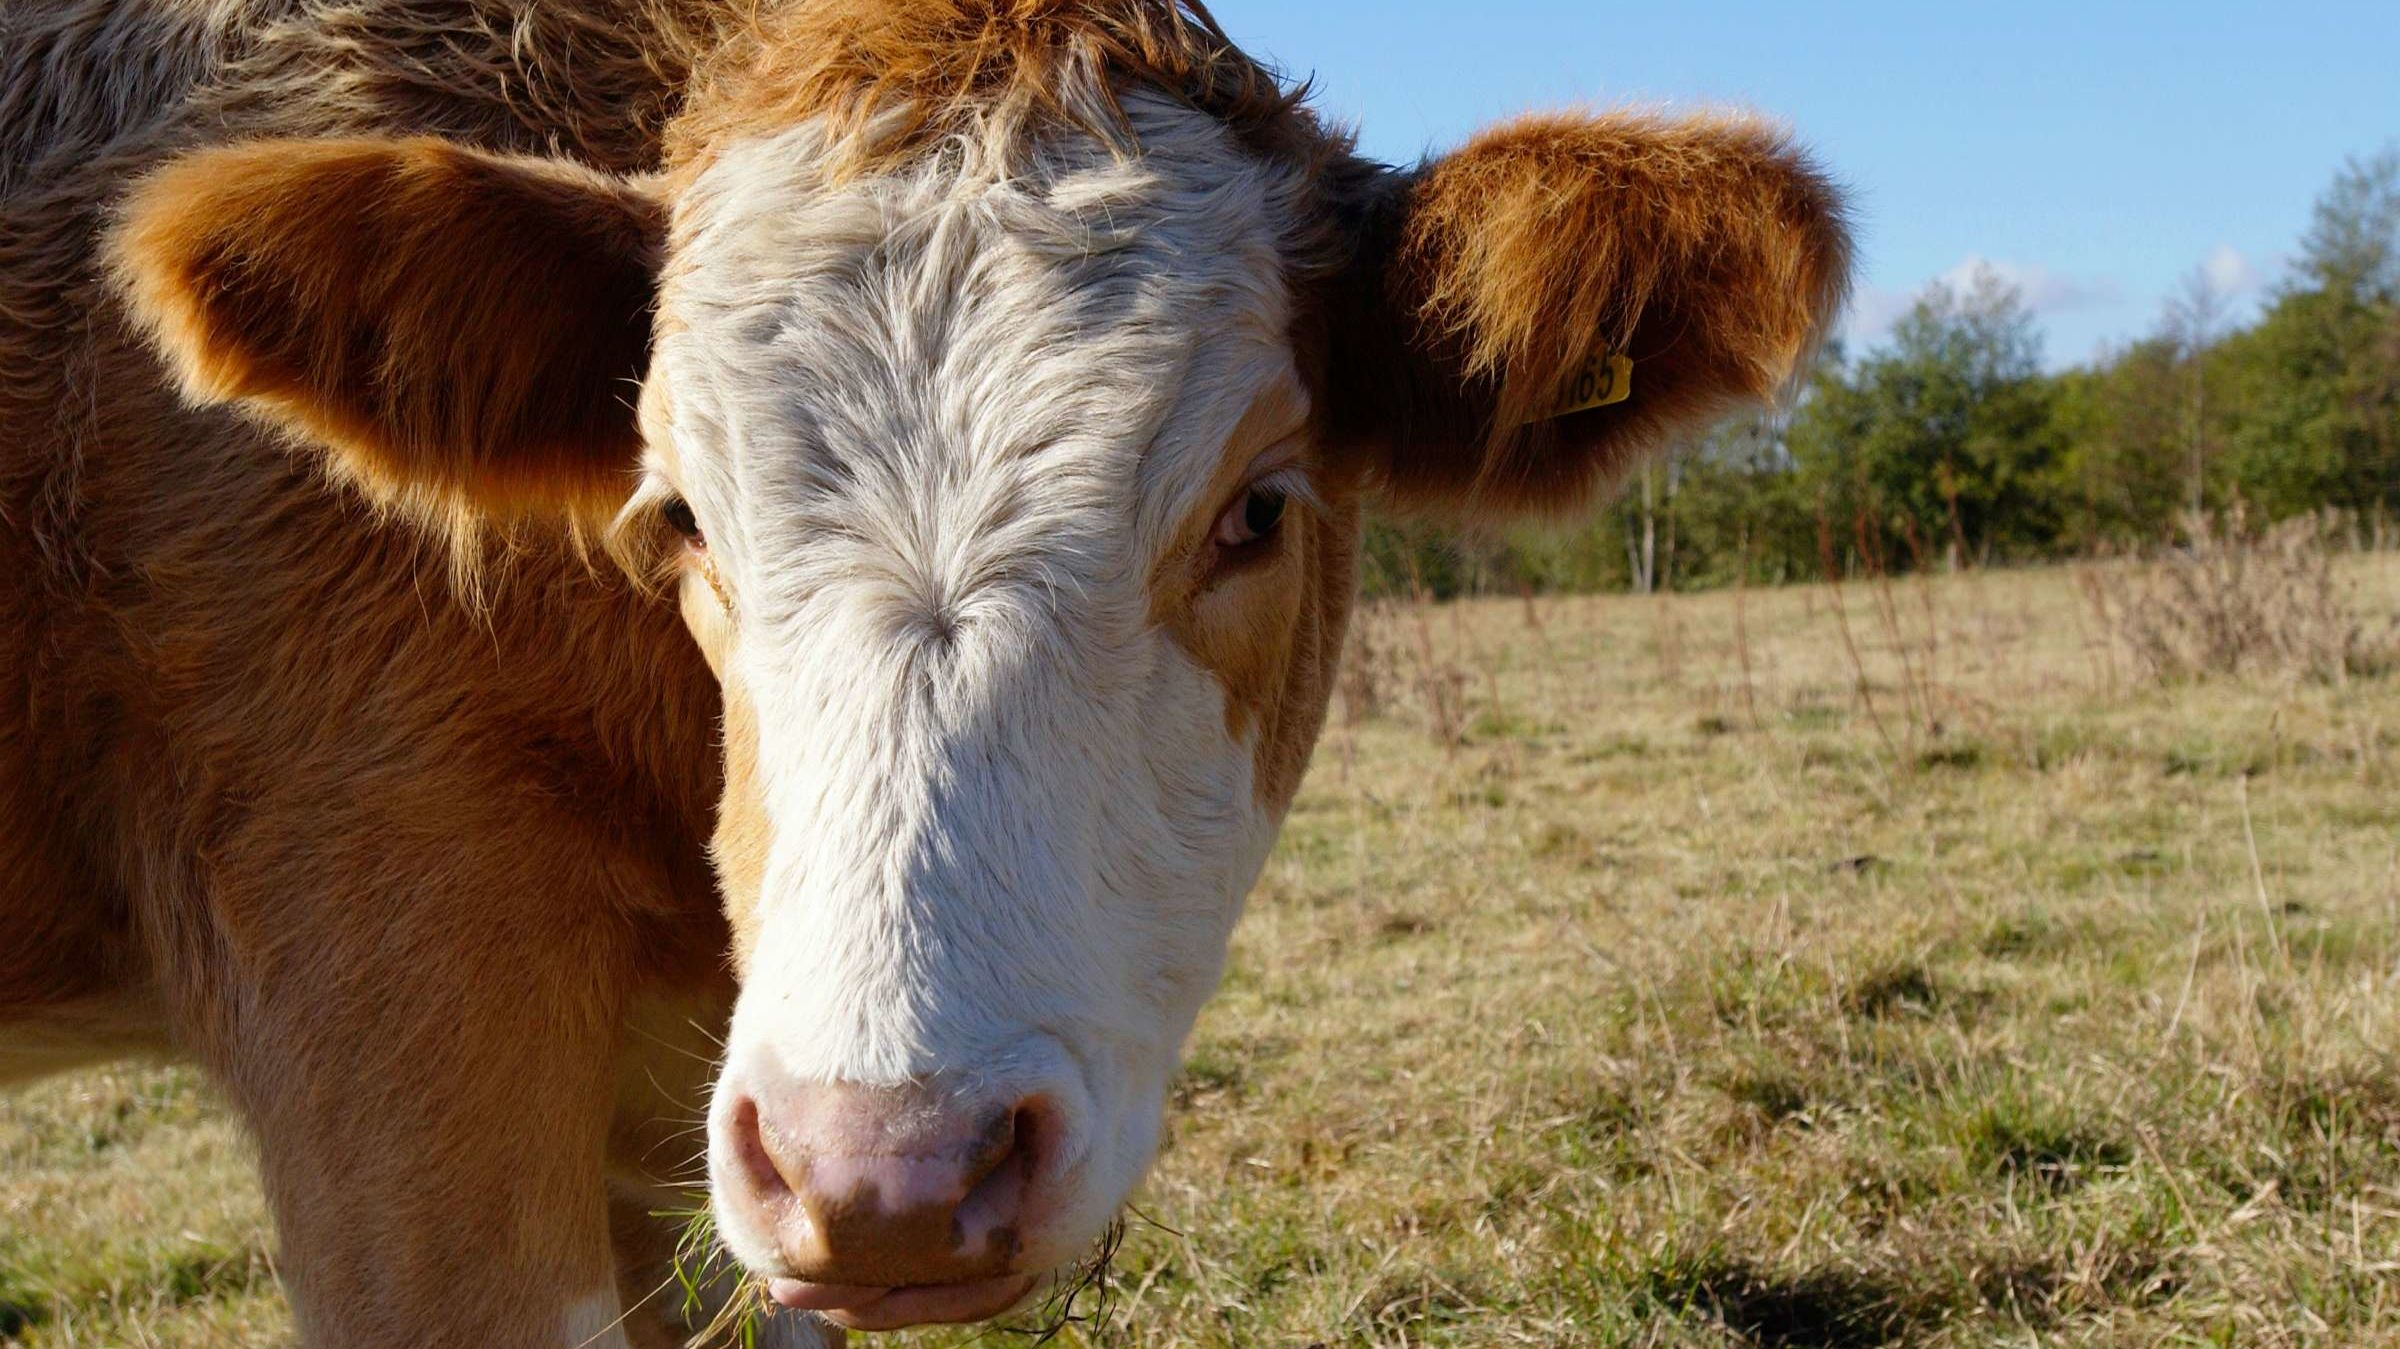 Mooove Over, Florida Man: A Florida Cow on the Loose Is Wanted By Police